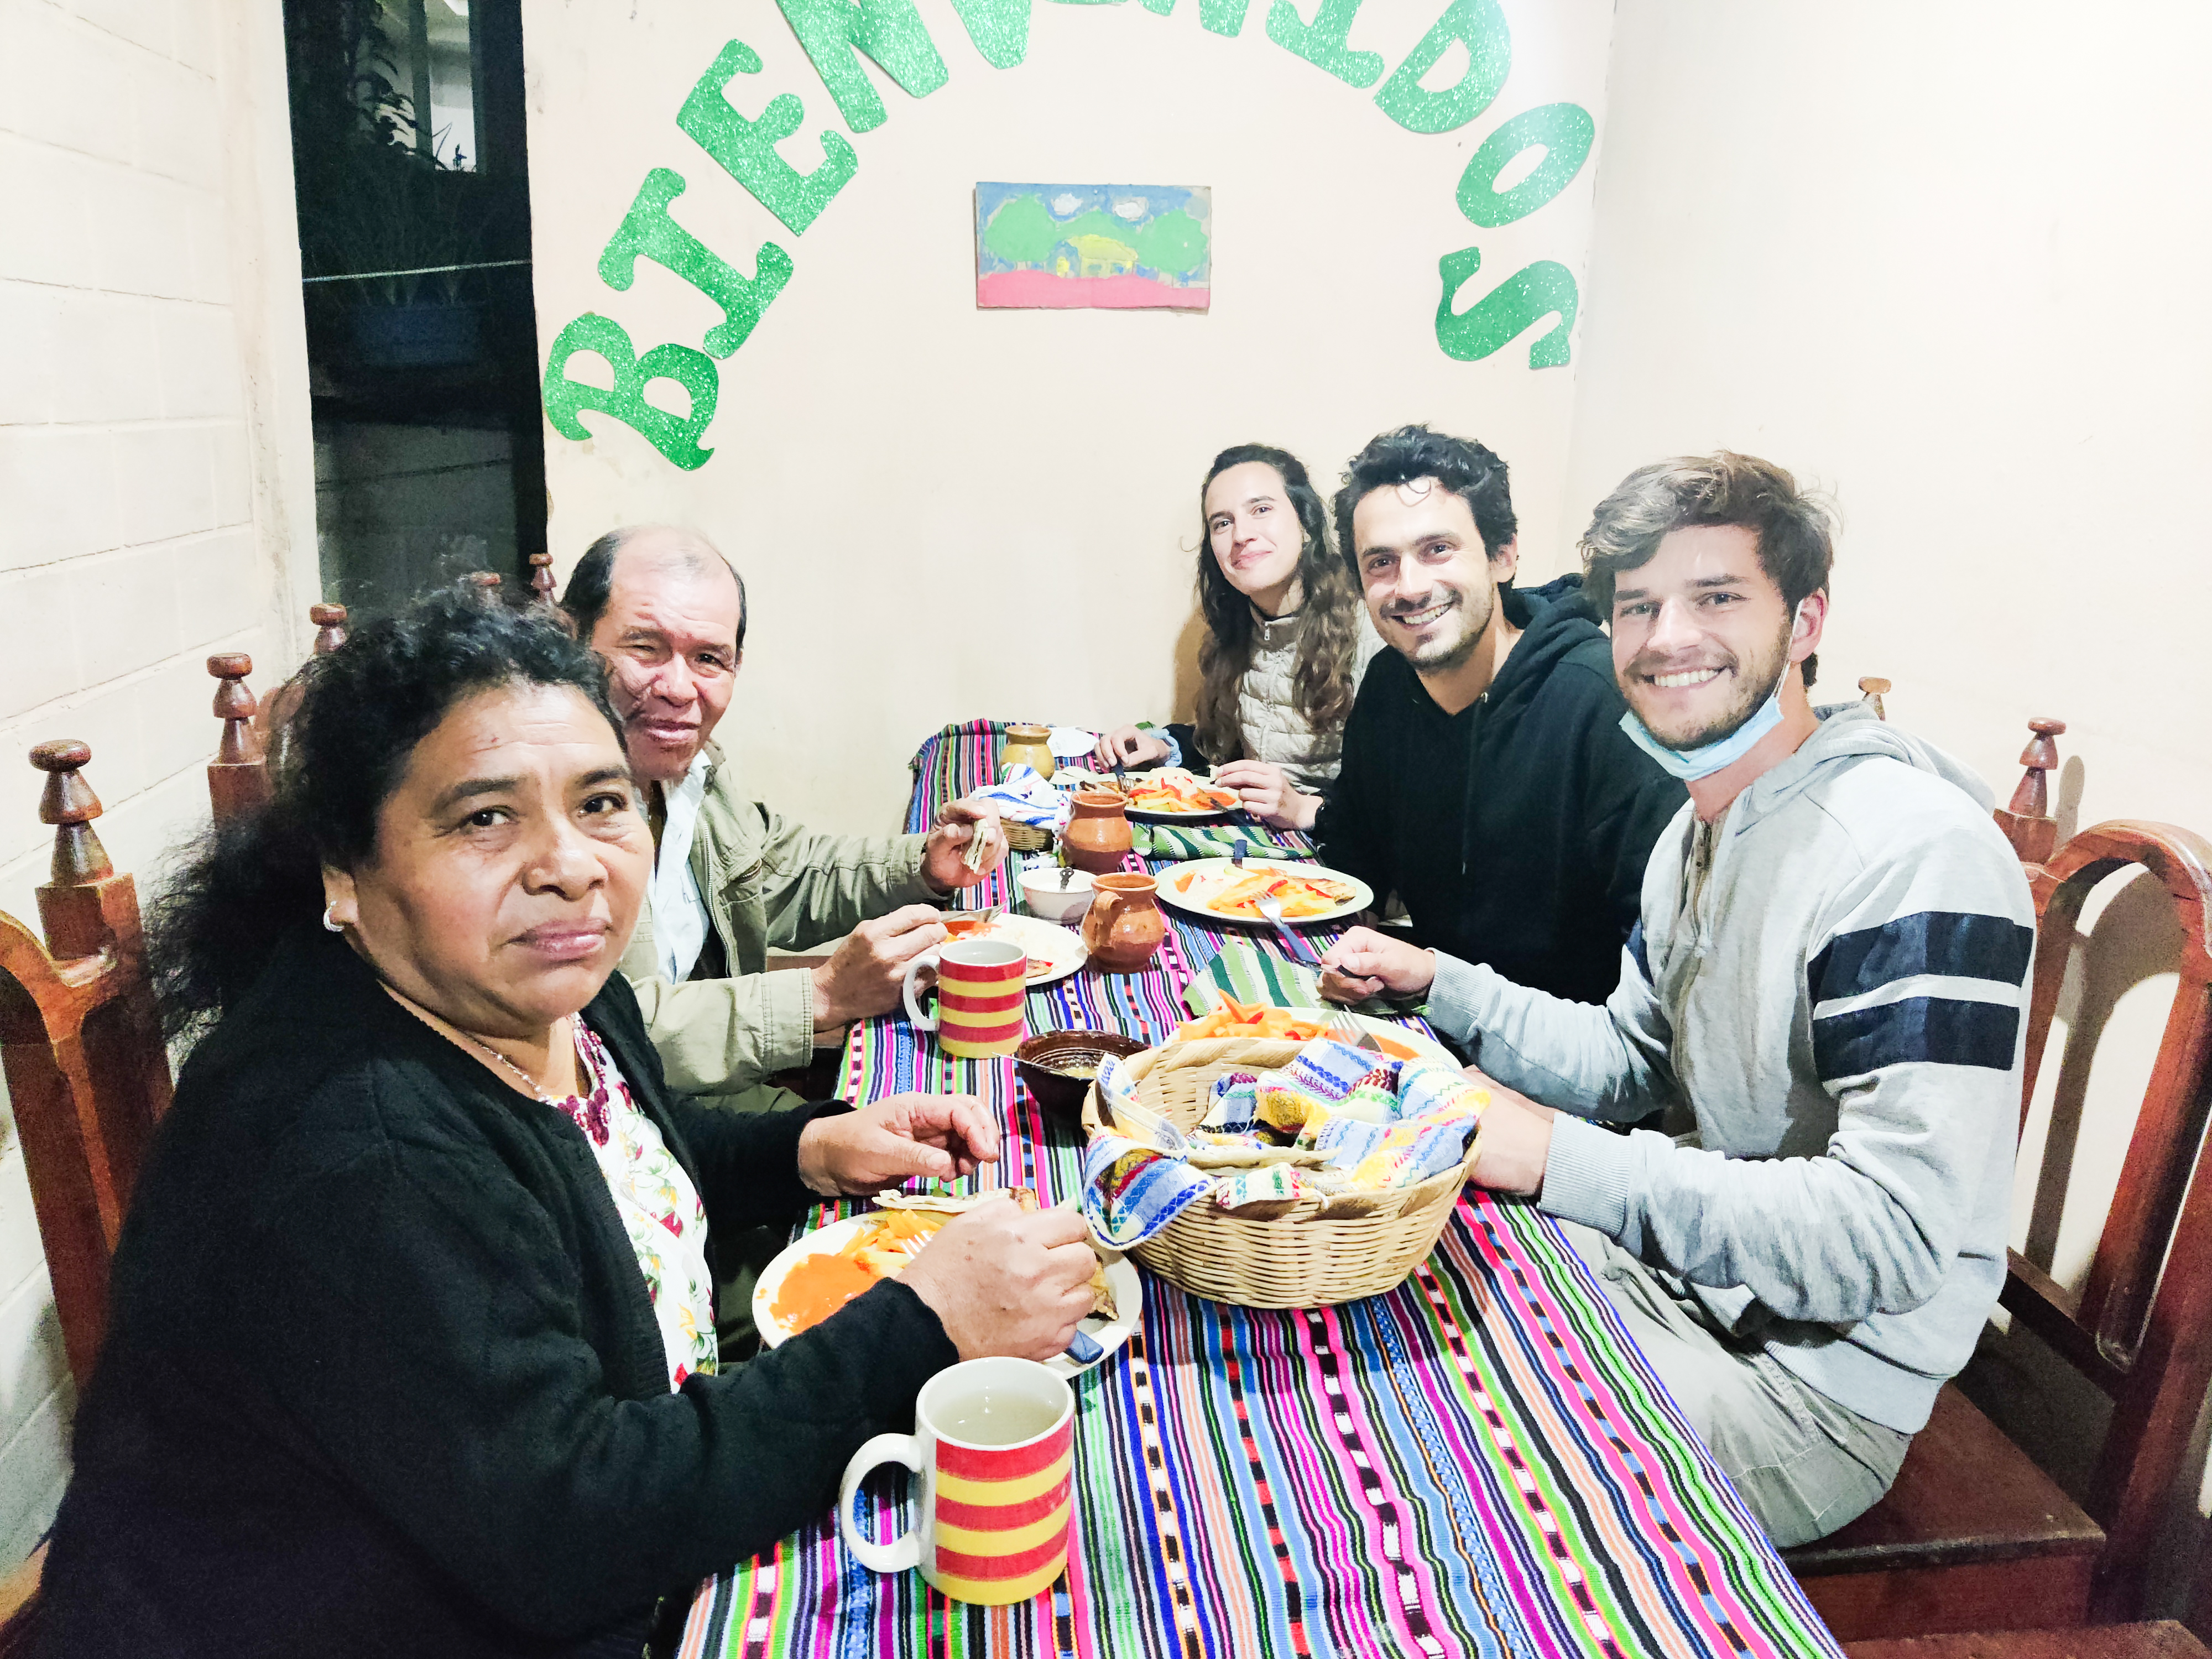 Dinner Guillermo and Lola Romain Sion Guatemala